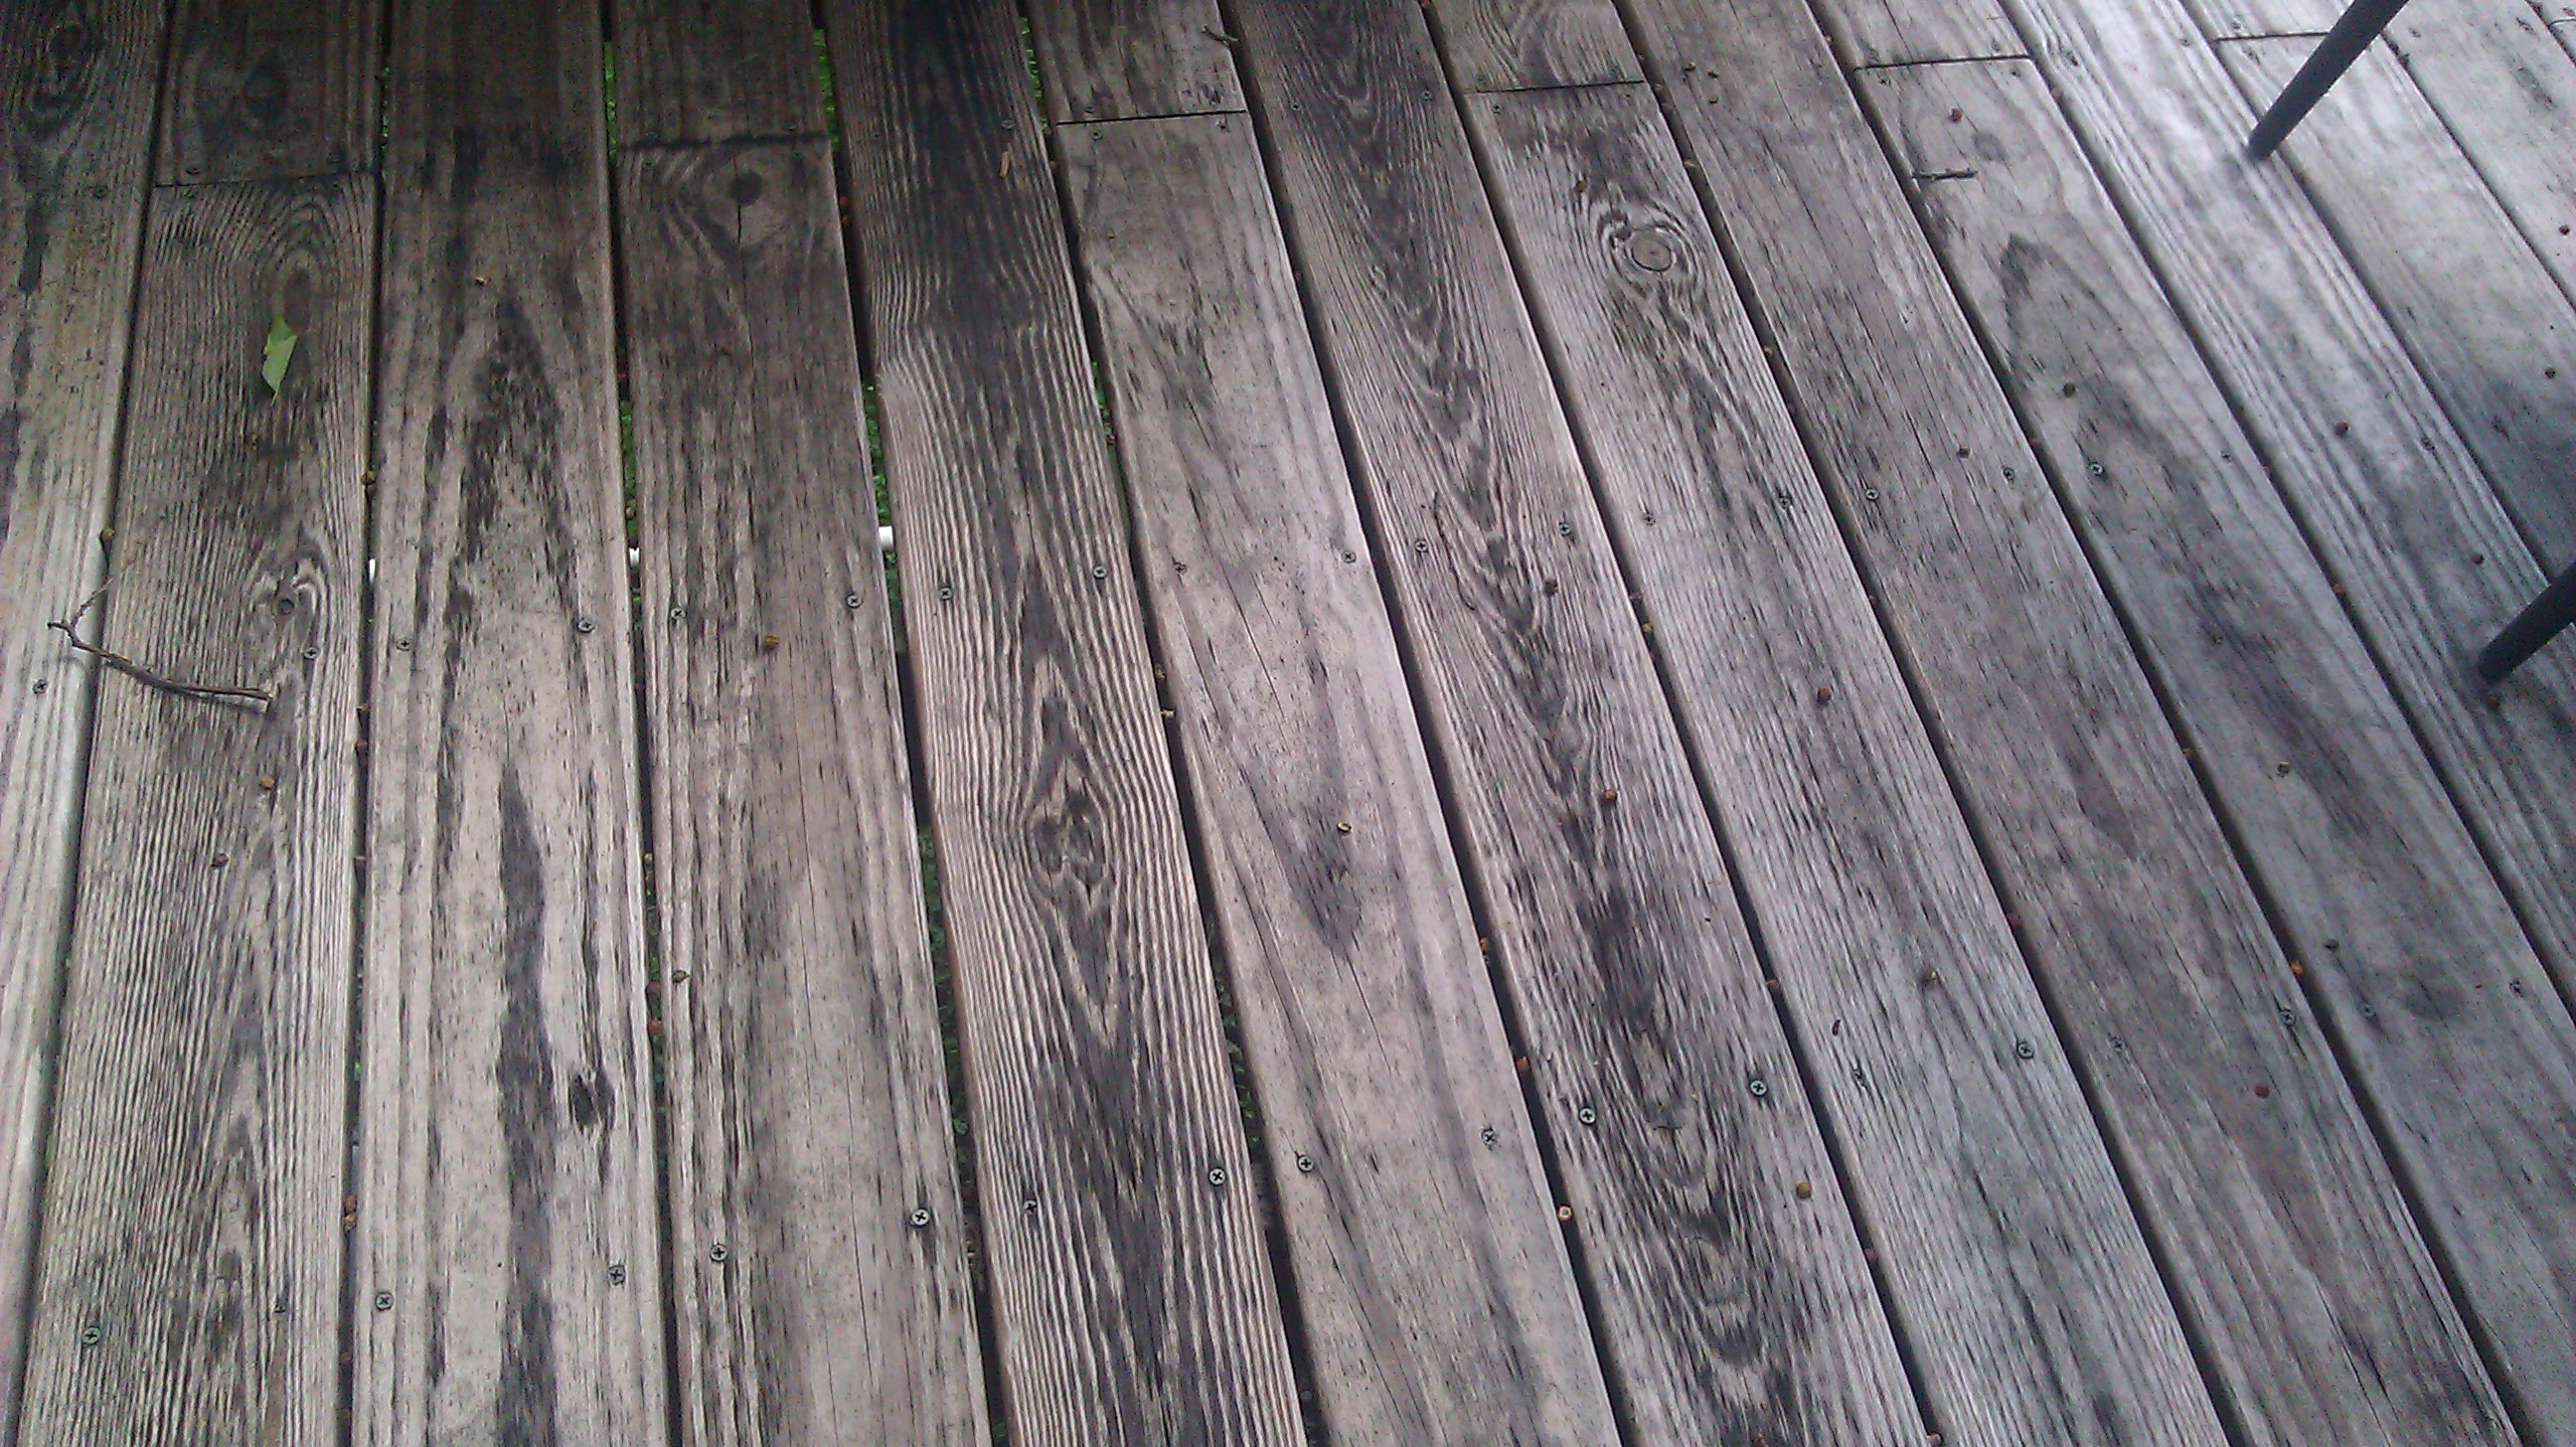 re staining cleaning deck on august 17 13 39 quote use the restore a